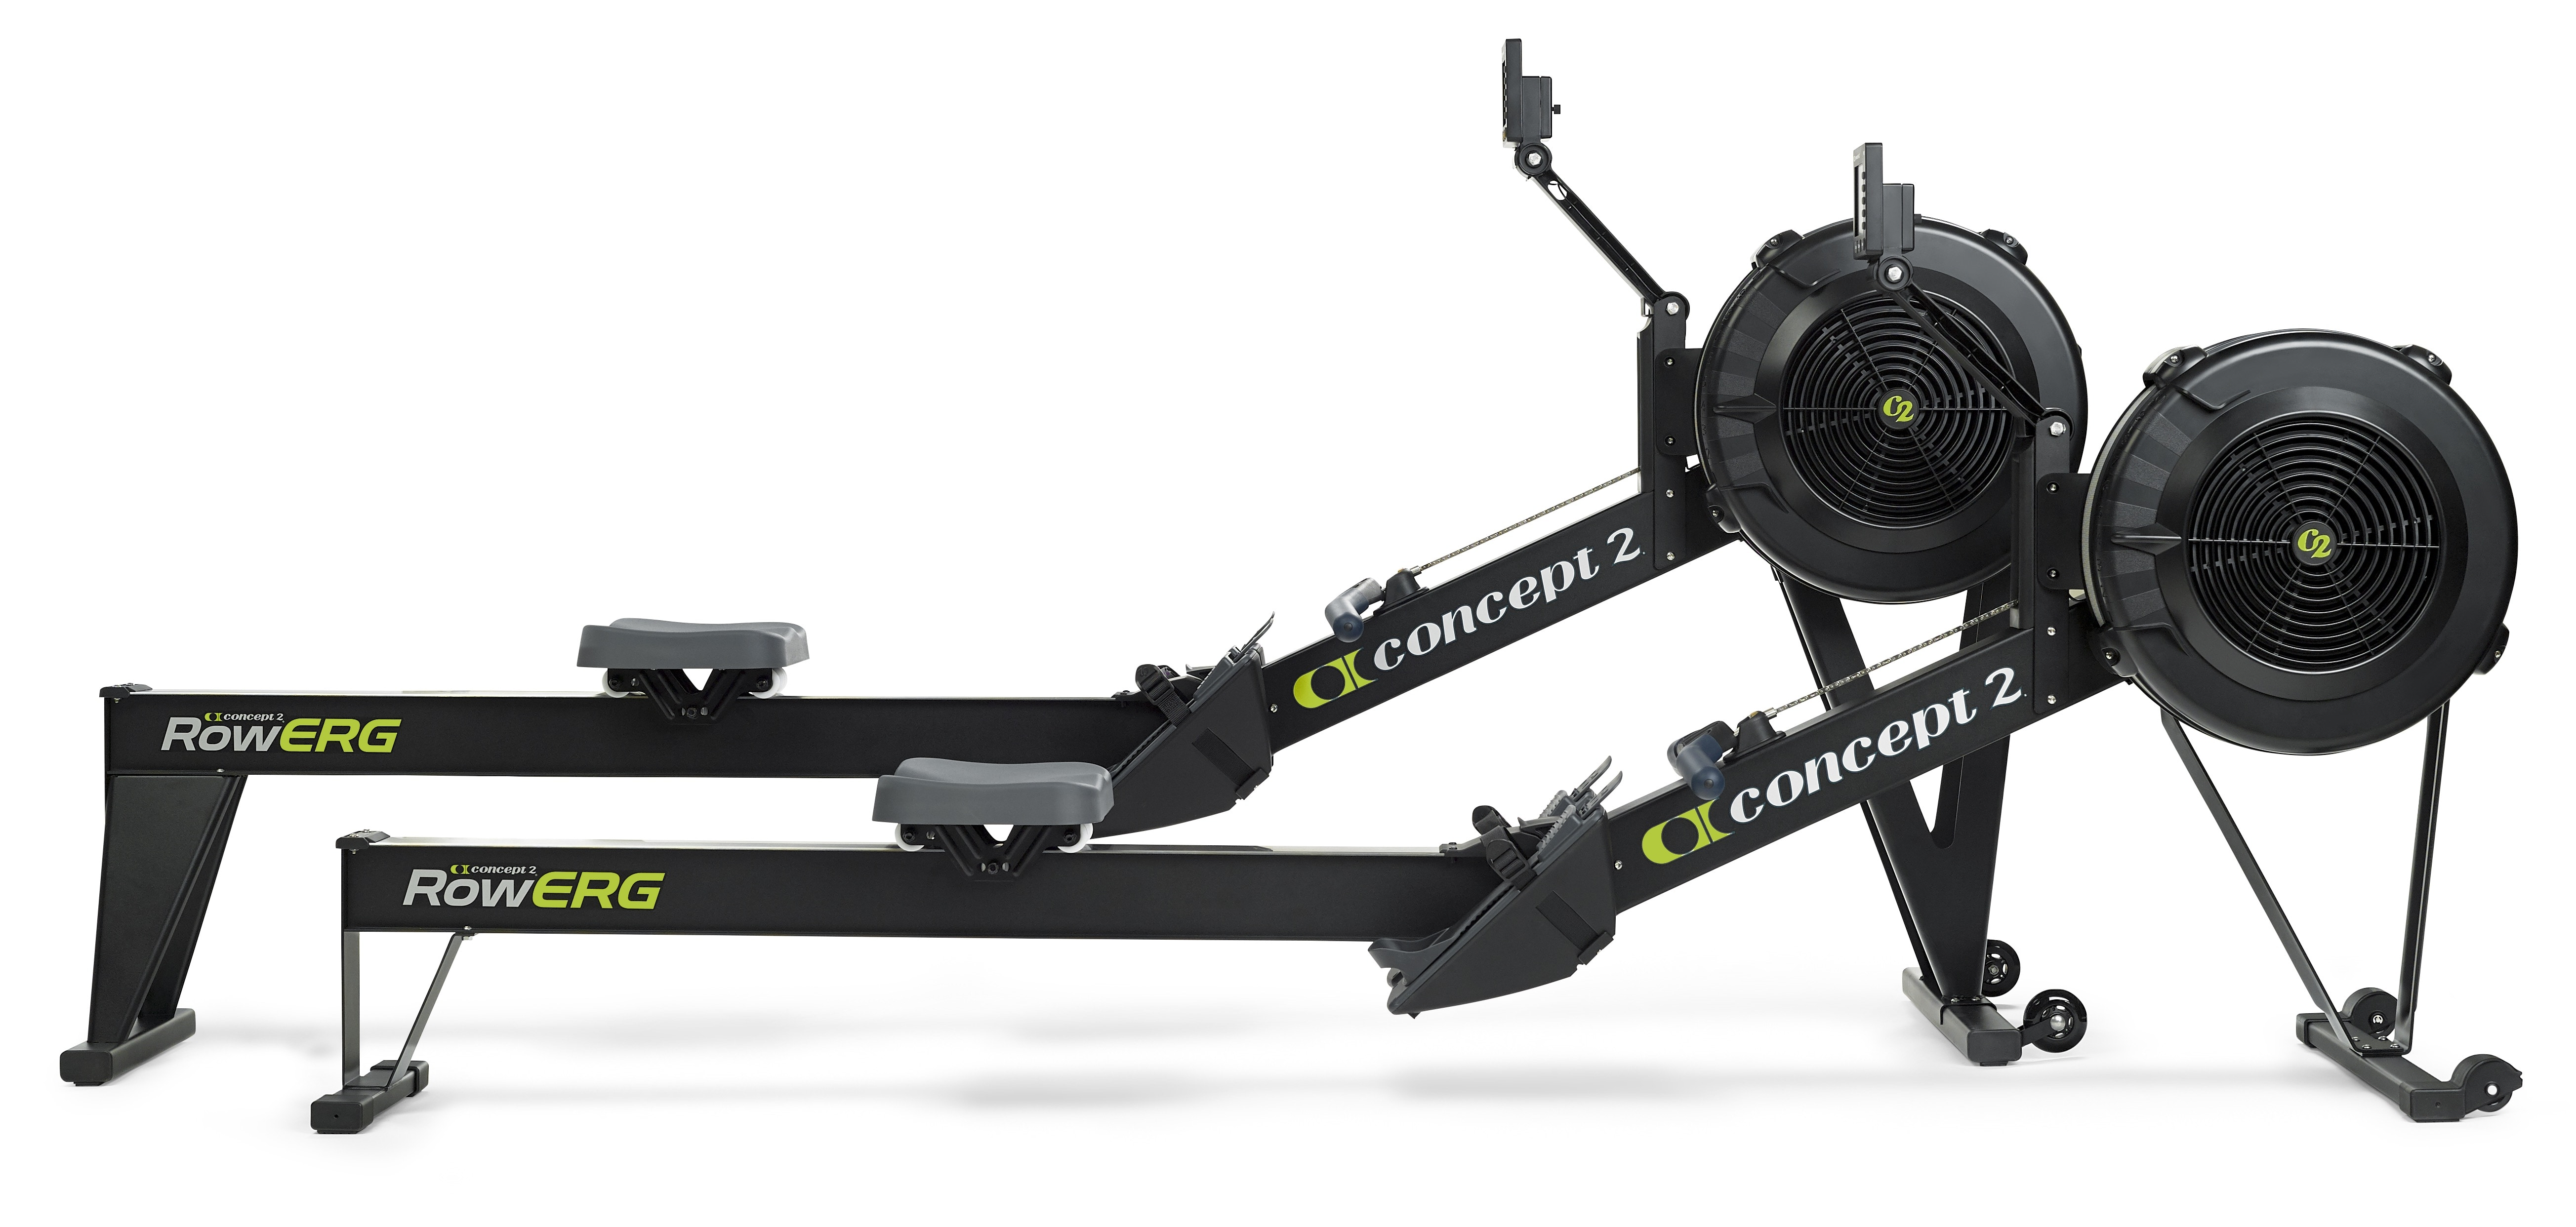 Concept2 RowErgs side-by-side